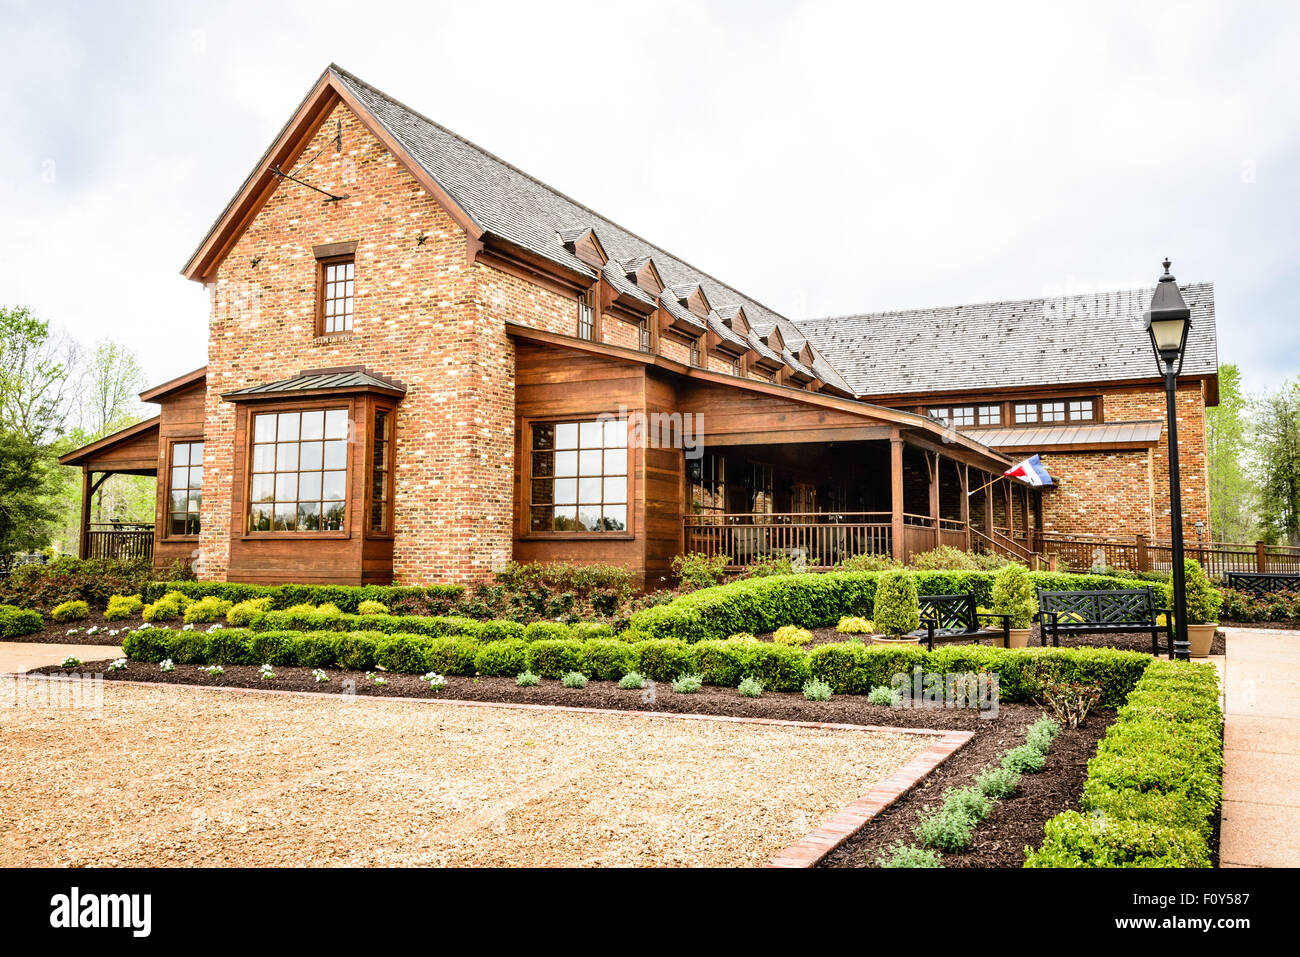 New Kent Winery, 8400 Old Church Road, New Kent, Virginia - Stock Image